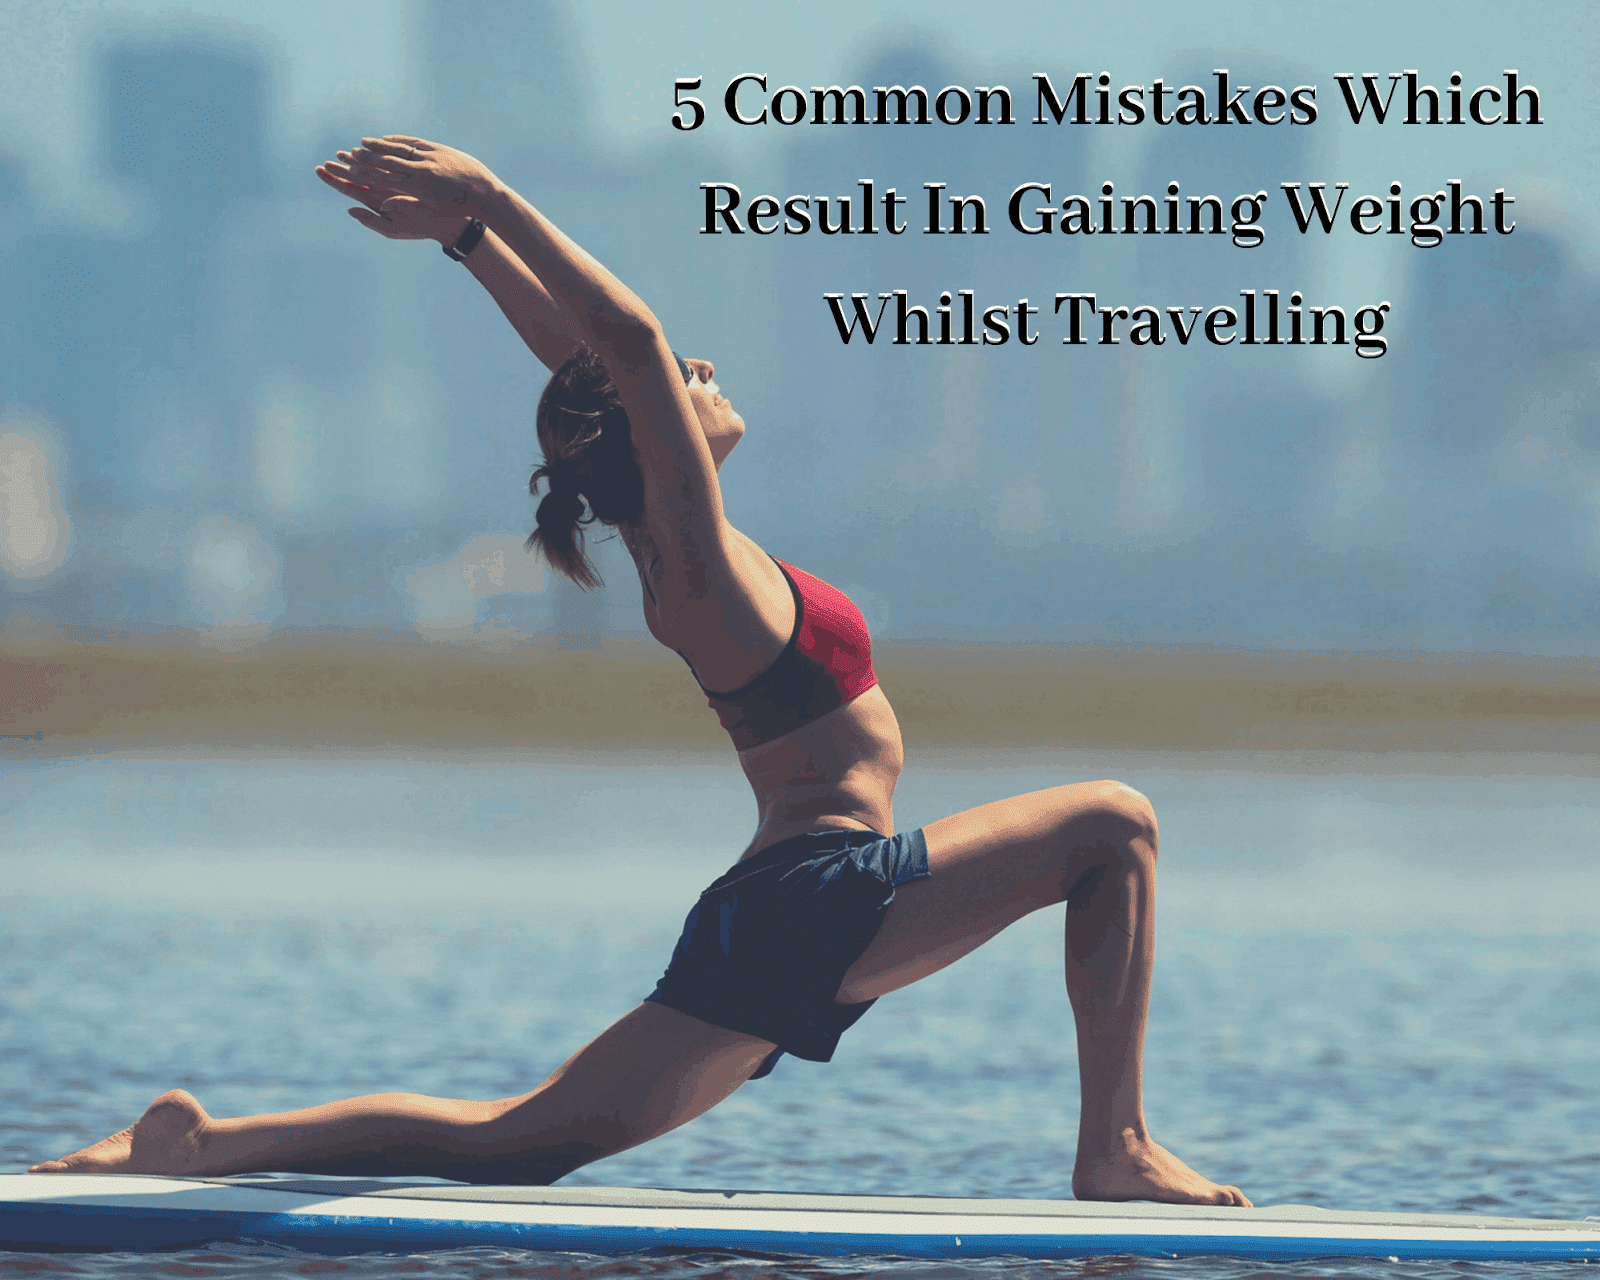 5 Common Mistakes Which Result In Gaining Weight Whilst Travelling